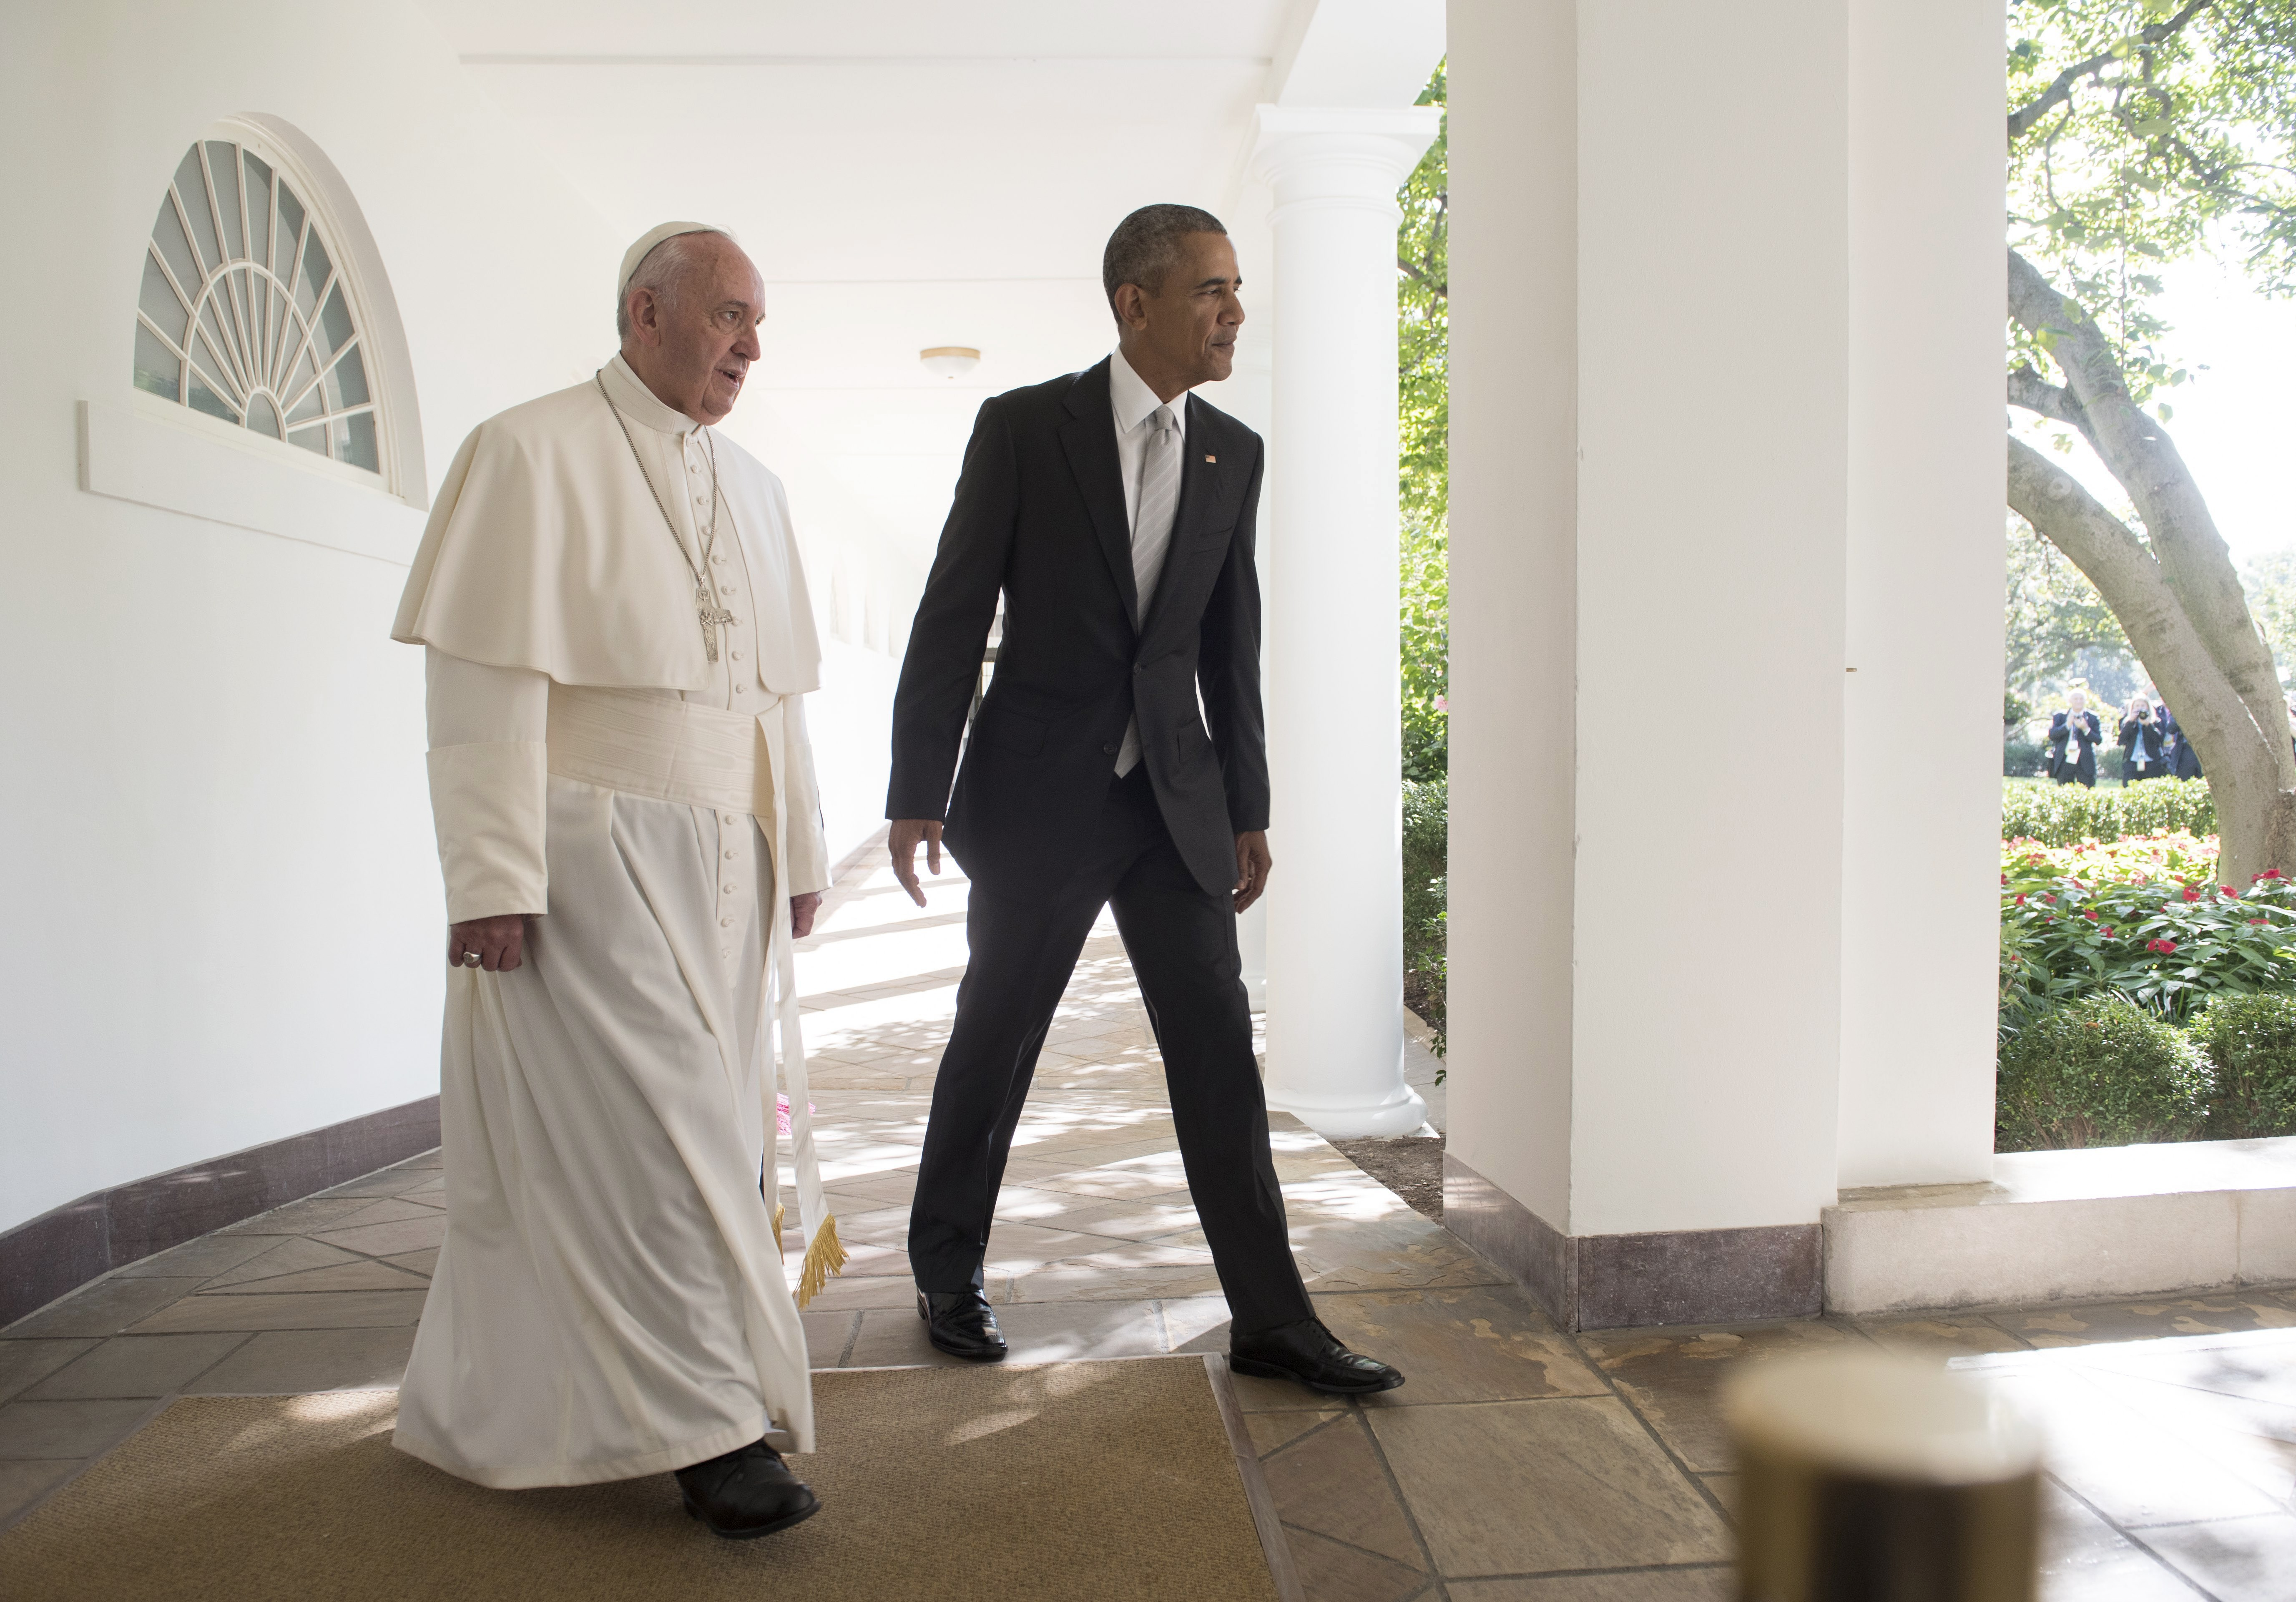 Barack Obama walks with Pope Francis down the West Wing Colonnade to a meeting in the Oval Office of the White House in Washington, DC, on Sept. 23, 2015.